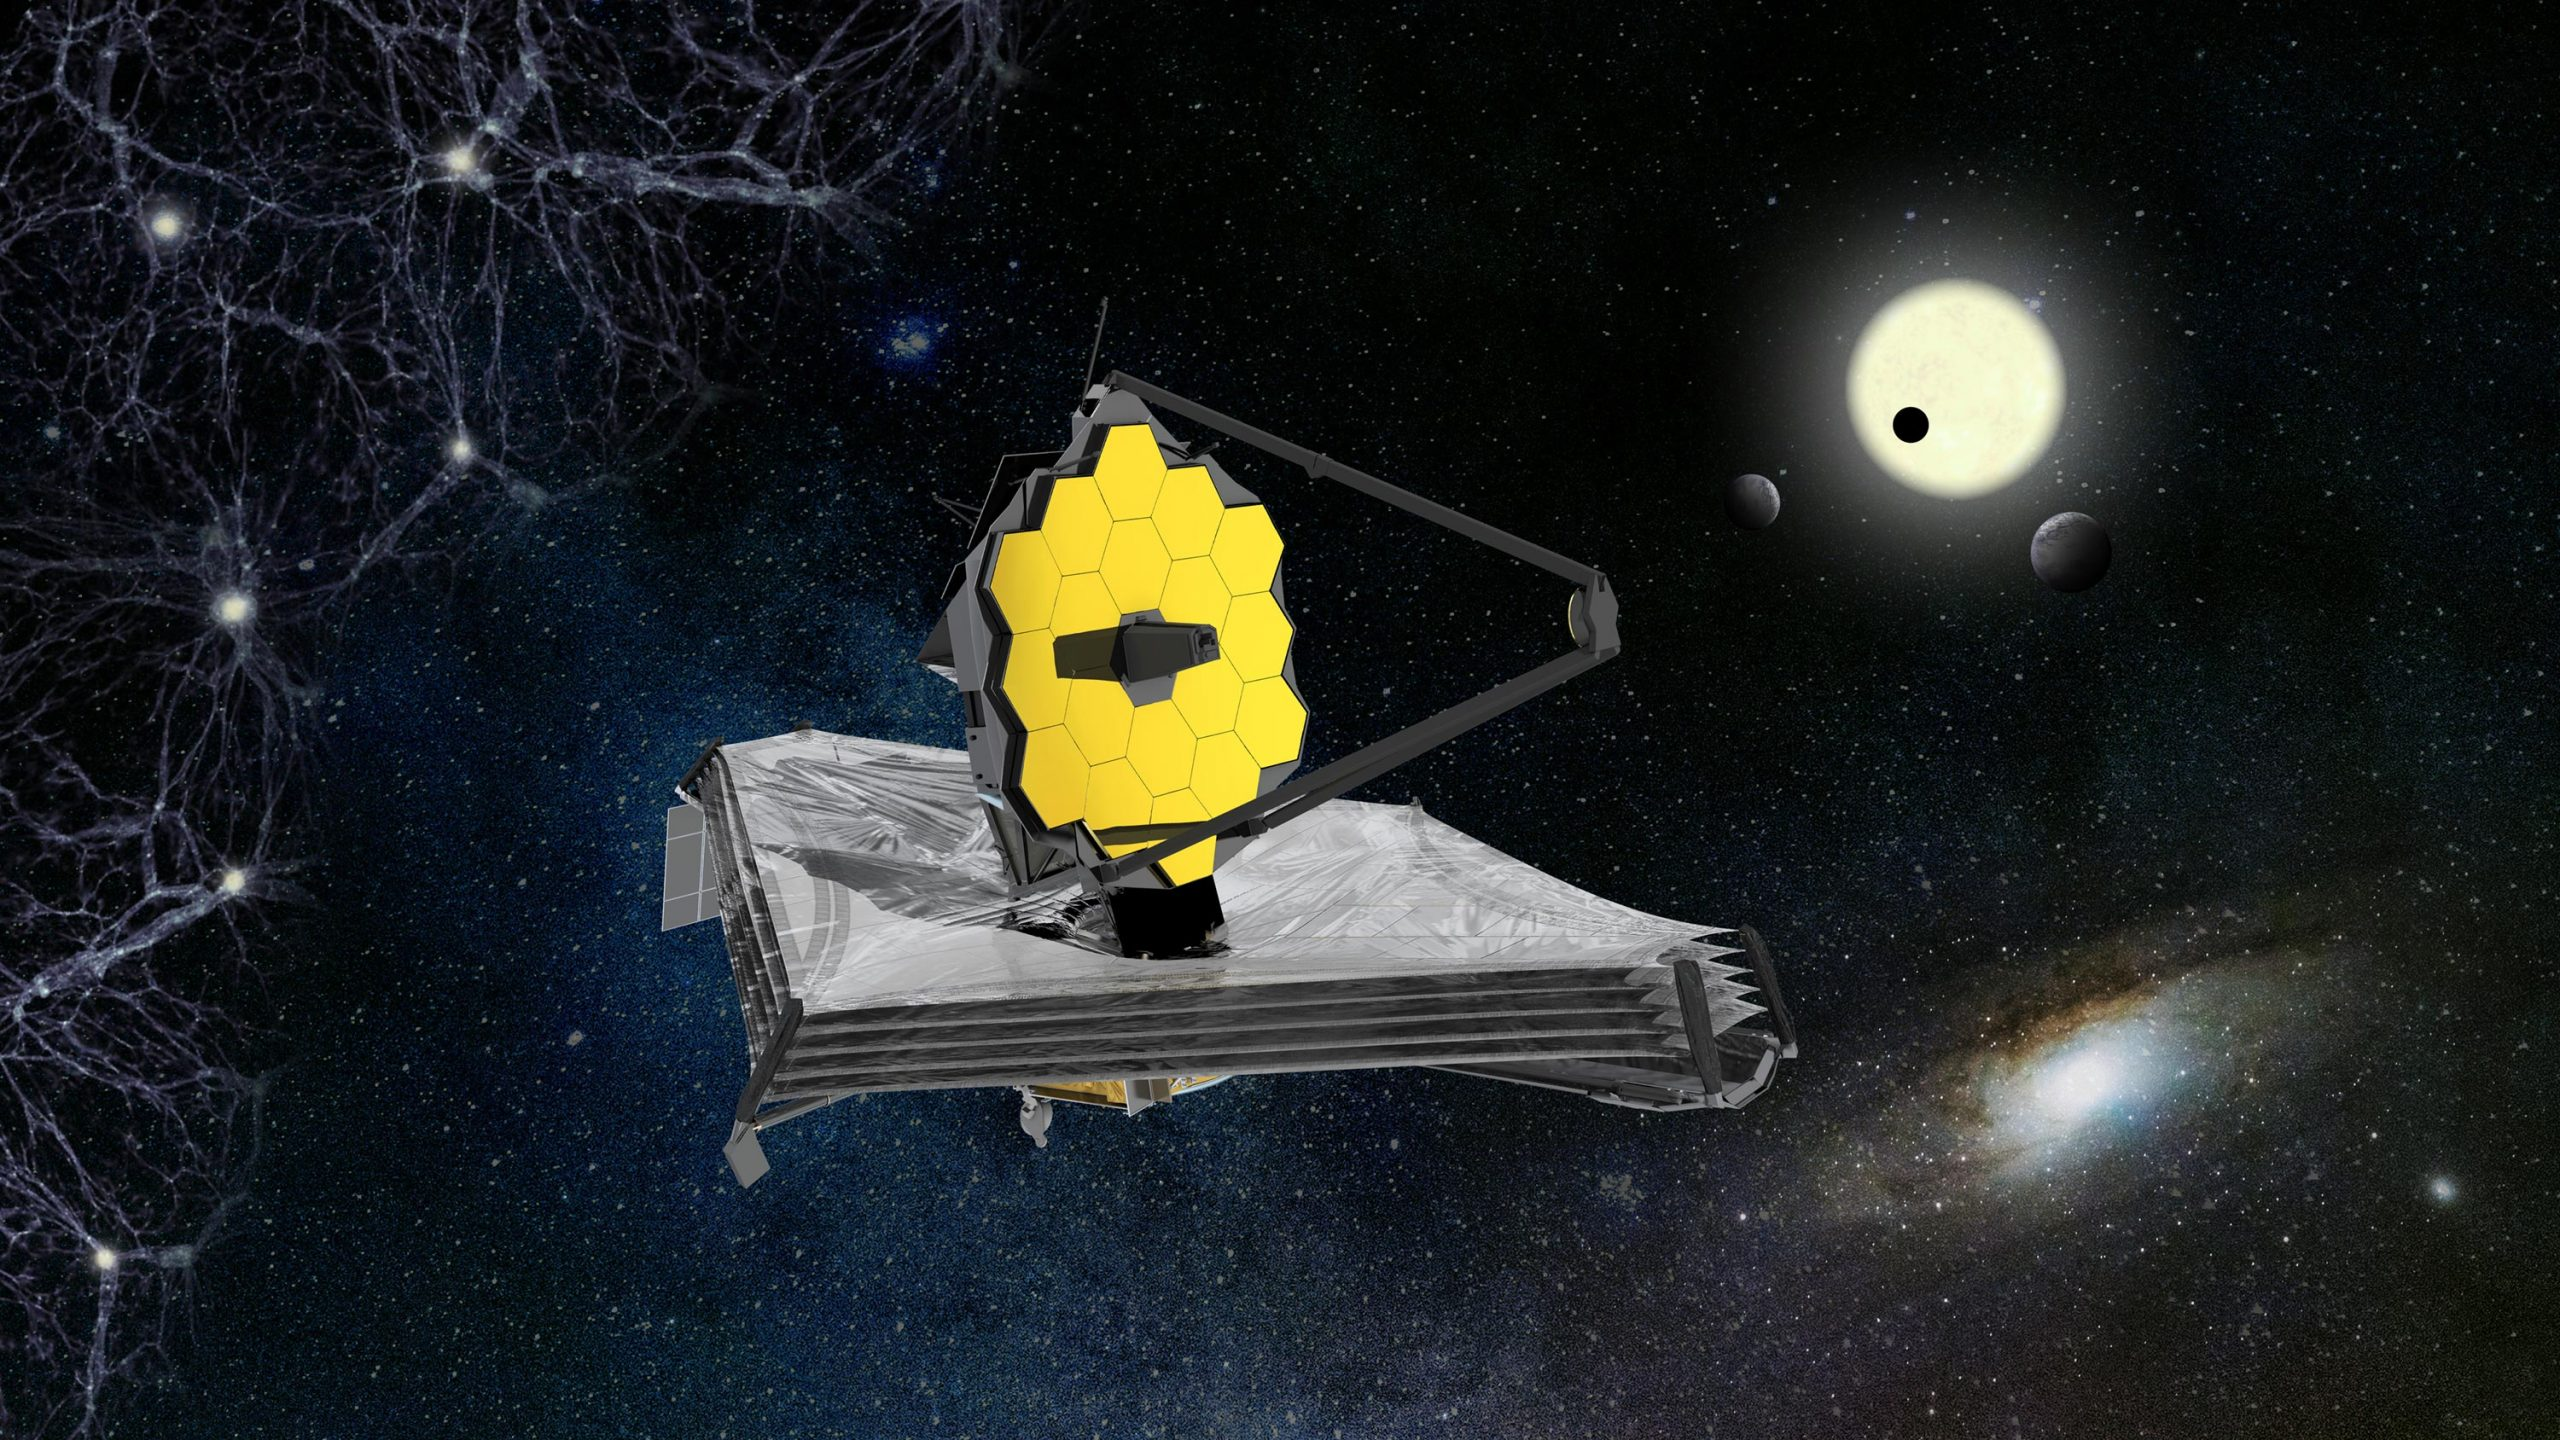 James Webb Space Telescope Artists Impression scaled, The Greatest Origin Story of All: NASA Webb Space Telescope – 29 Days on the Edge [Video], Stephen Hawking black hole, ,Days, Edge, Greatest, nasa, Origin, science news, SPACE, spacelivenews, Story, telescope, video, Webb, SpaceLiveNews